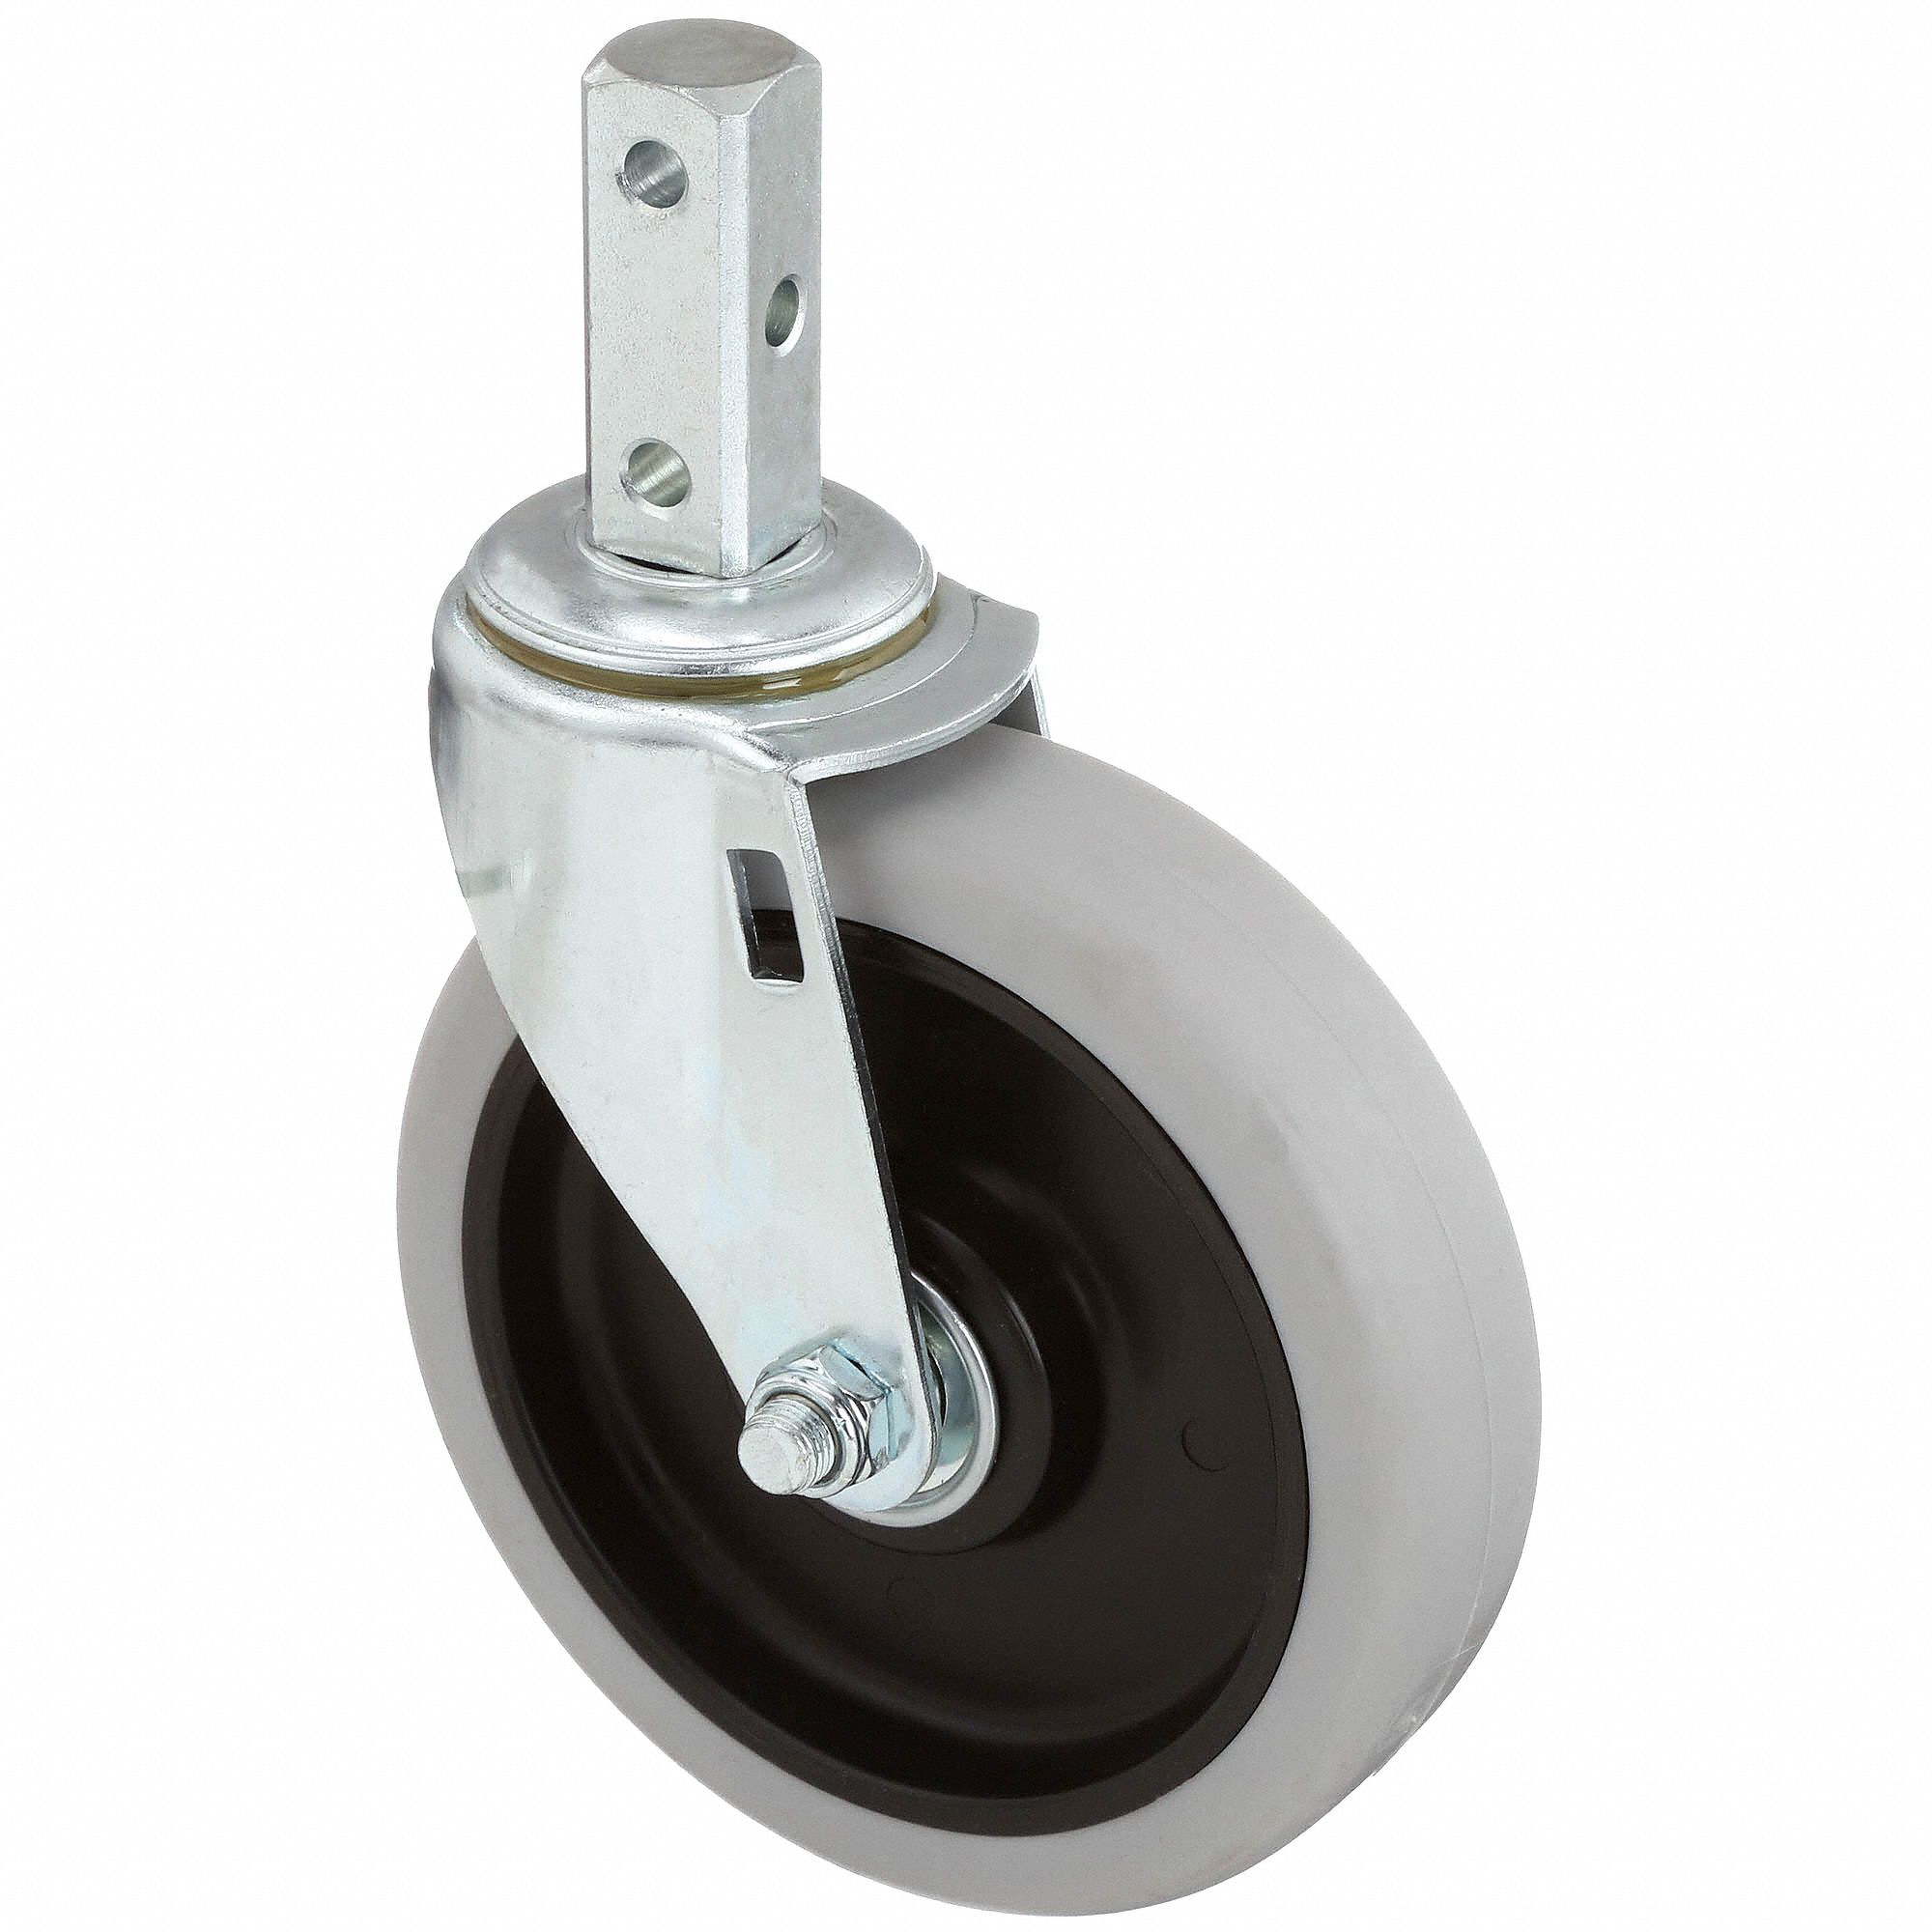 2-15//16 Mount Height 90 lbs Capacity 2-1//2 Wheel Dia Hooded Twin Swivel 1-1//2 Plate Width Wagner Plate Caster E.R 2 Wheel Width 1-1//2 Plate Length Plain Bearing Nylon Wheel